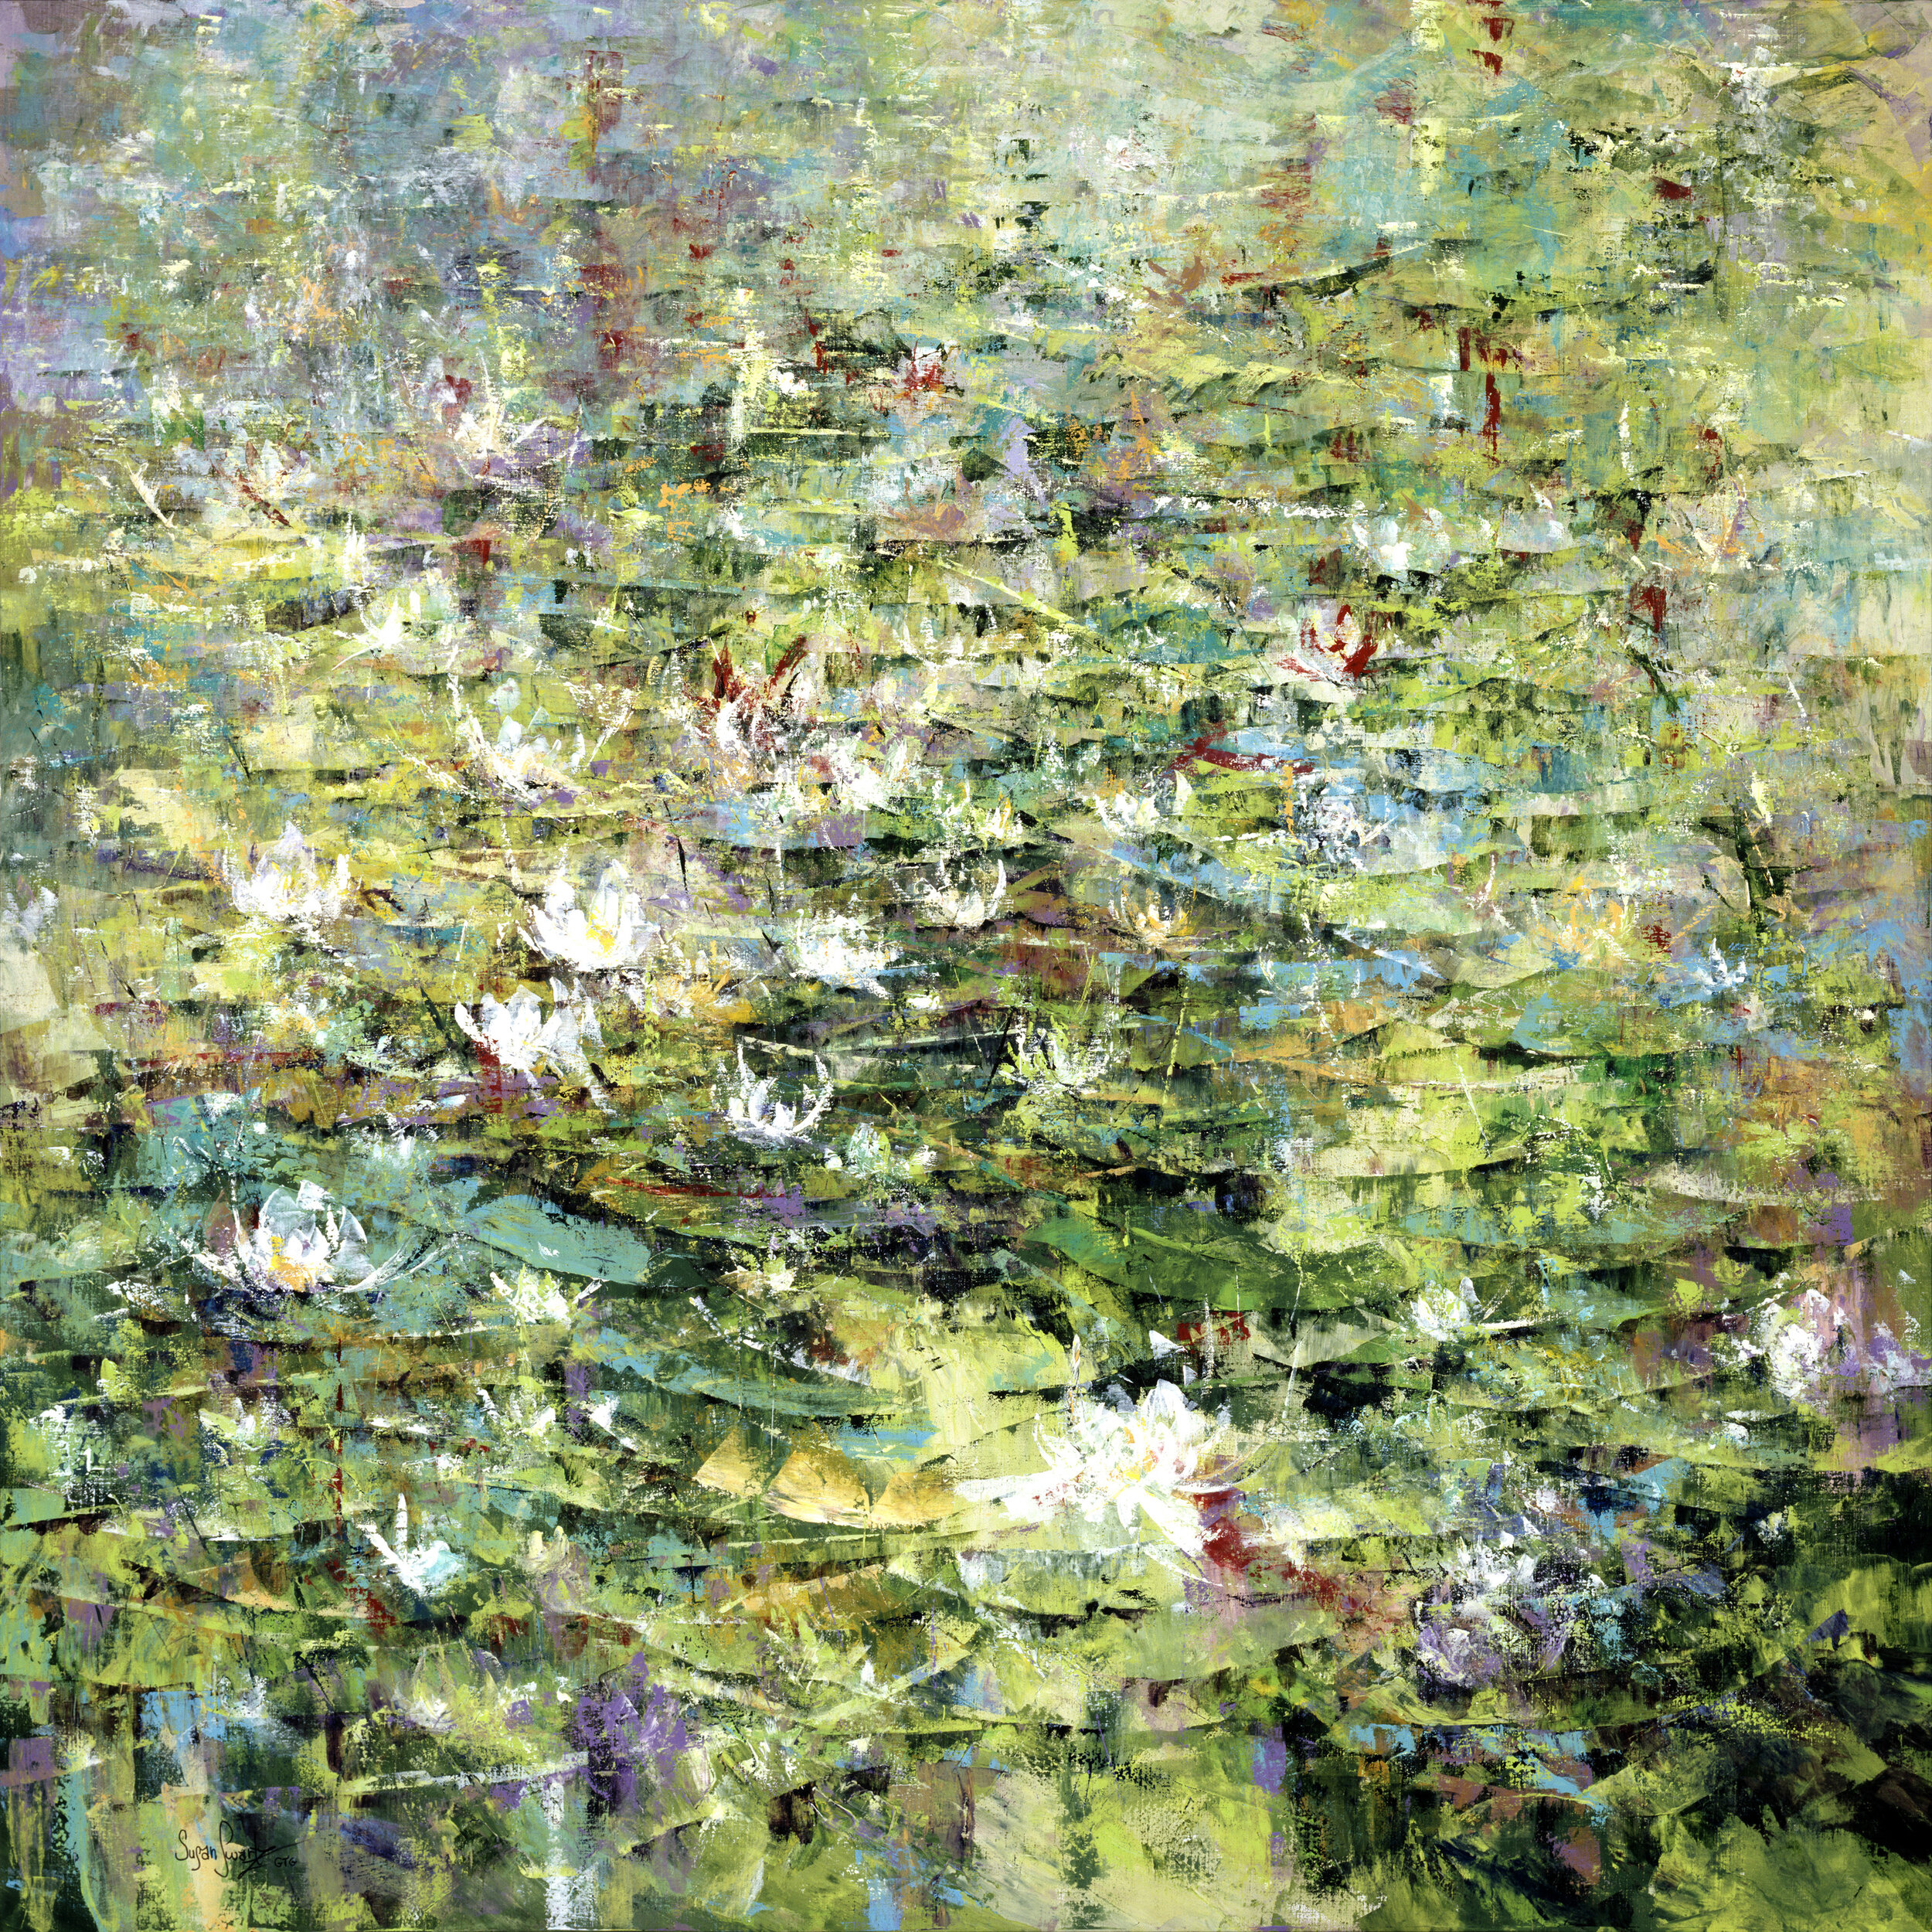 "In the midst of her illness, Susan spent an entire year completing  Serenade of Lilies  (Acrylic on linen, 72x72"" 2006). The abstract approach reveals a departure from the familiar, as she fought for the strength to paint."